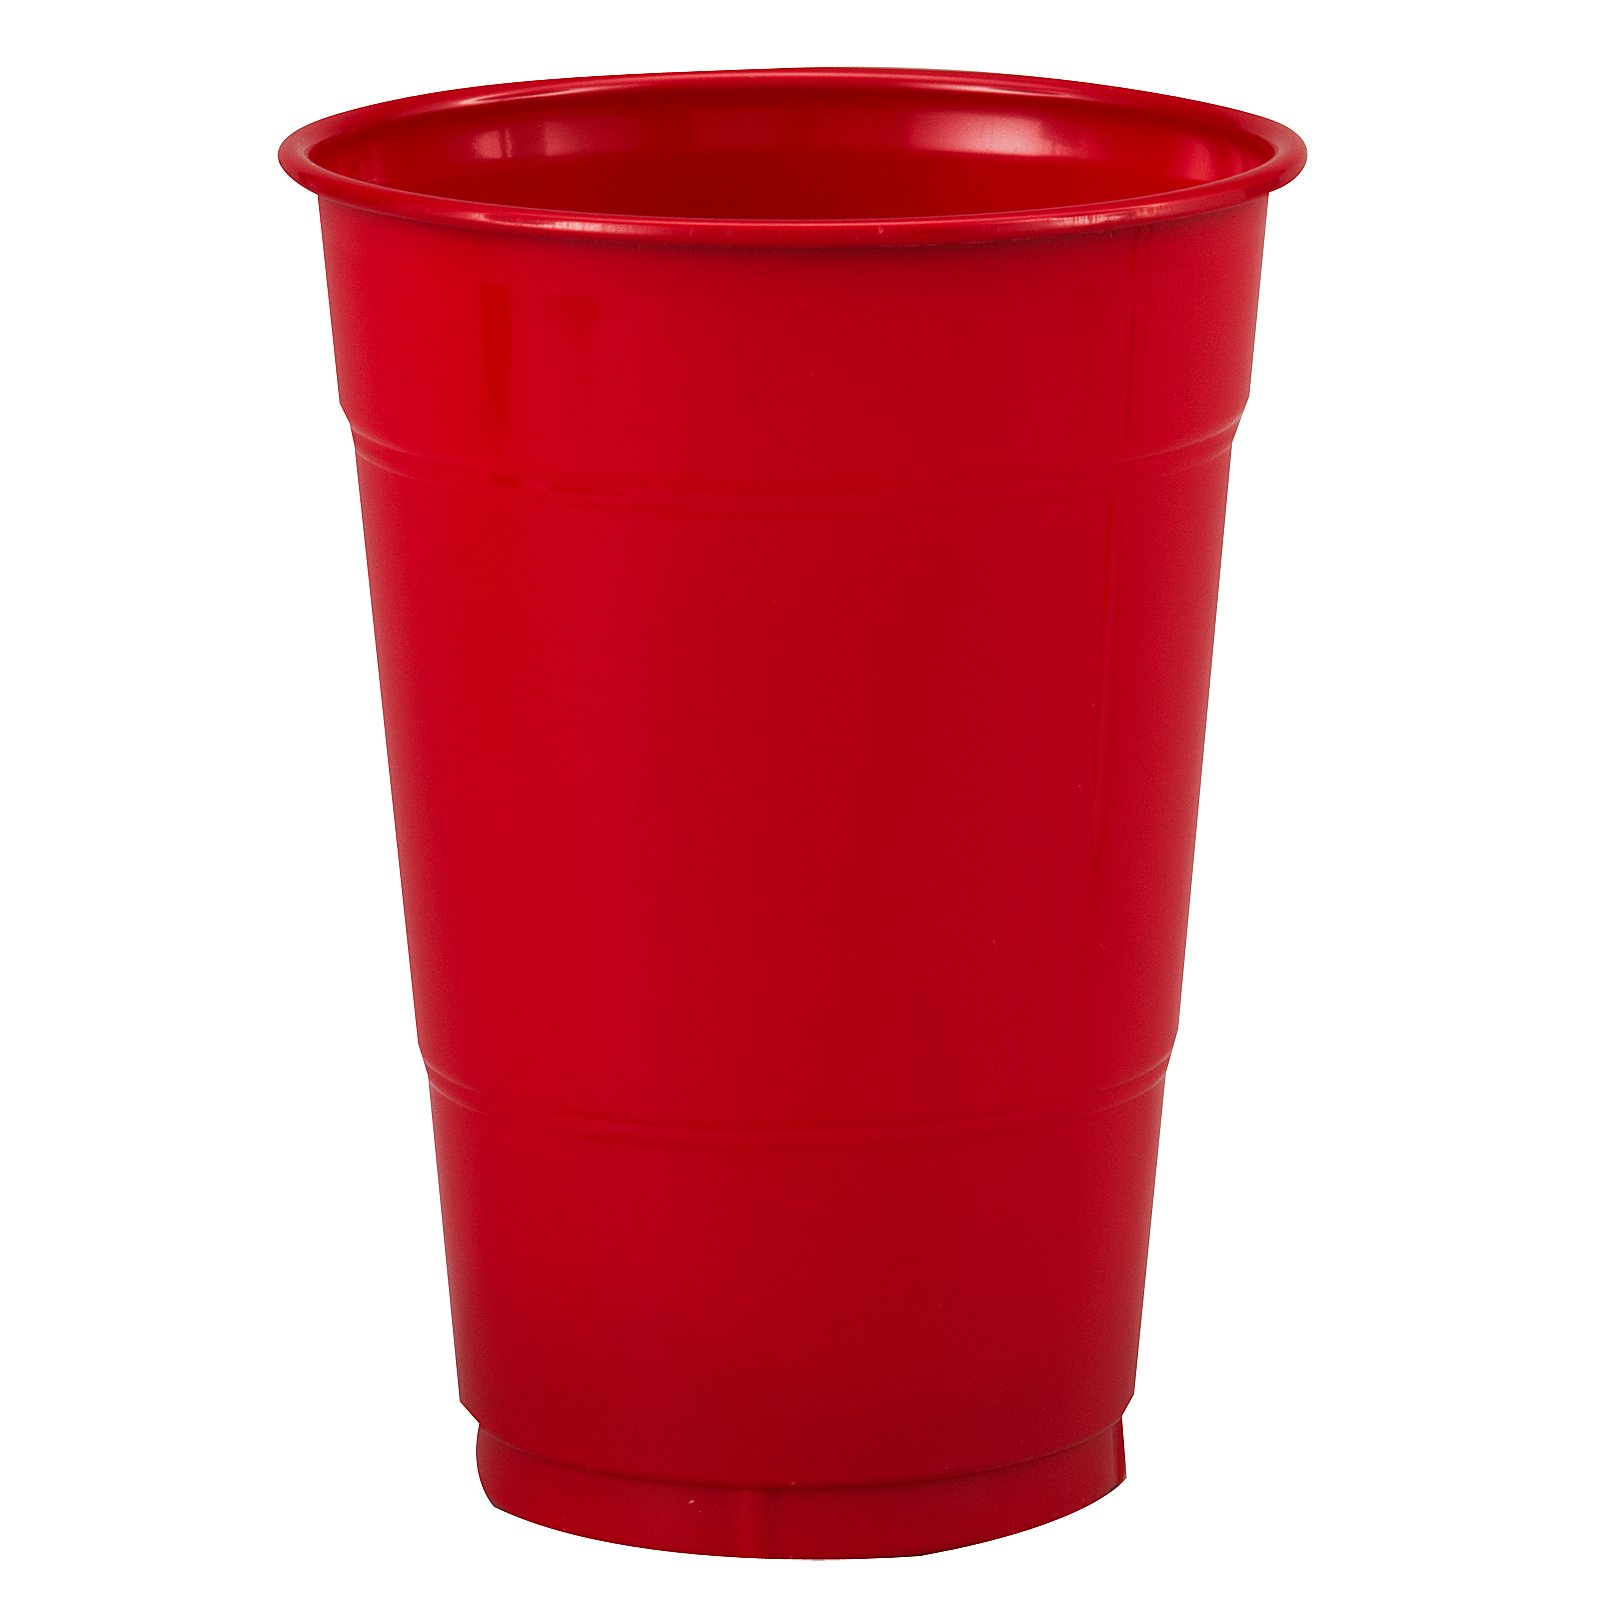 Classic Red (Red) 16 oz. Plastic Cups (20 count)